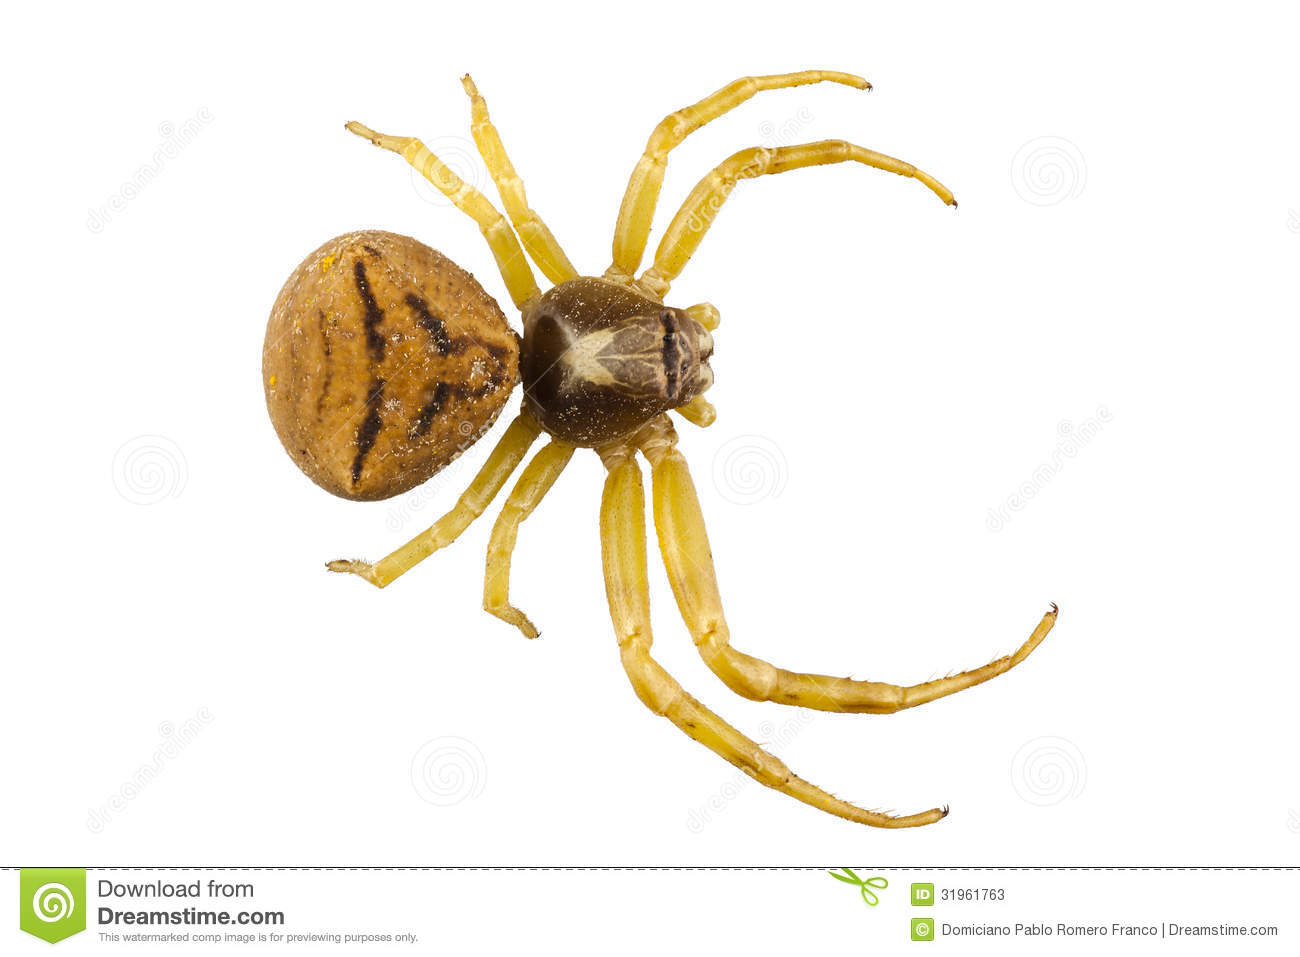 Crab Spider clipart #17, Download drawings